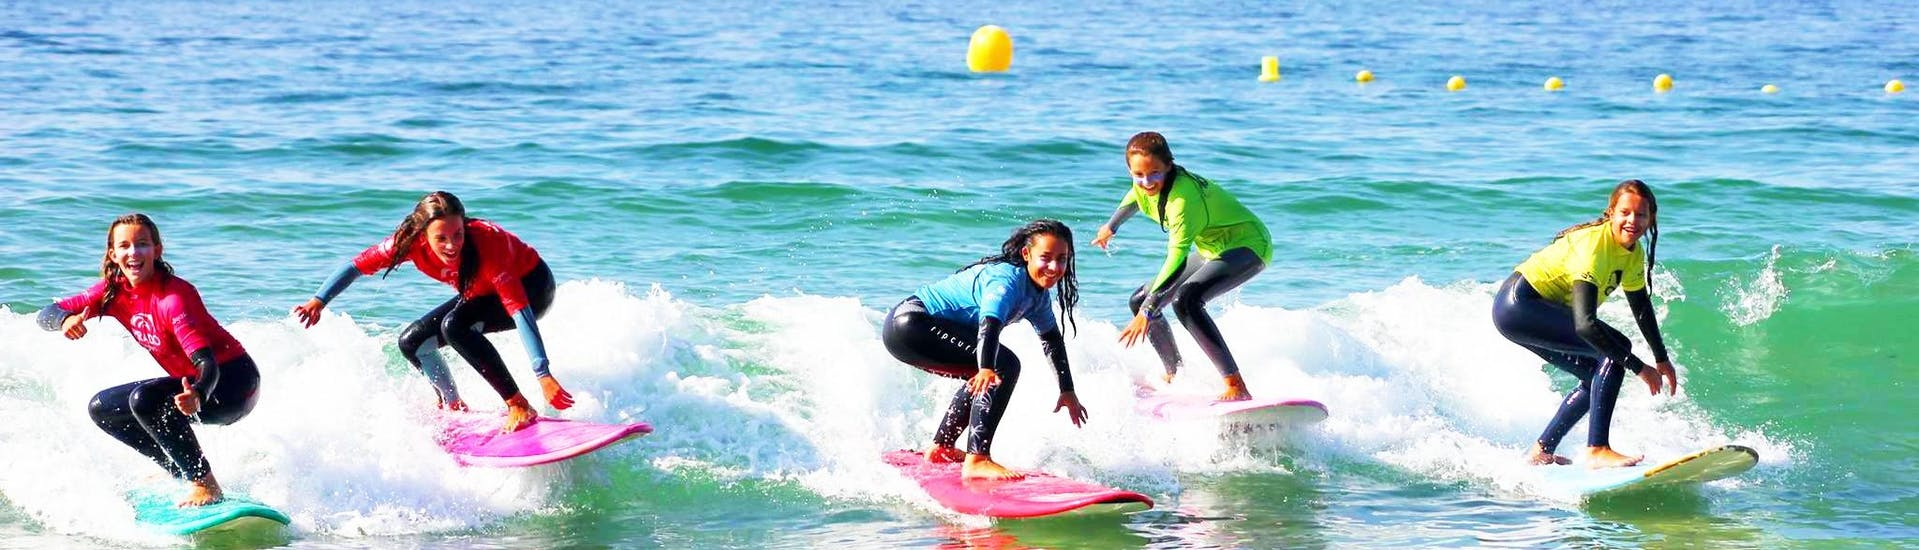 A group of surfers enjoy surfing on the beautiful beach together with Prado Surf Patos.